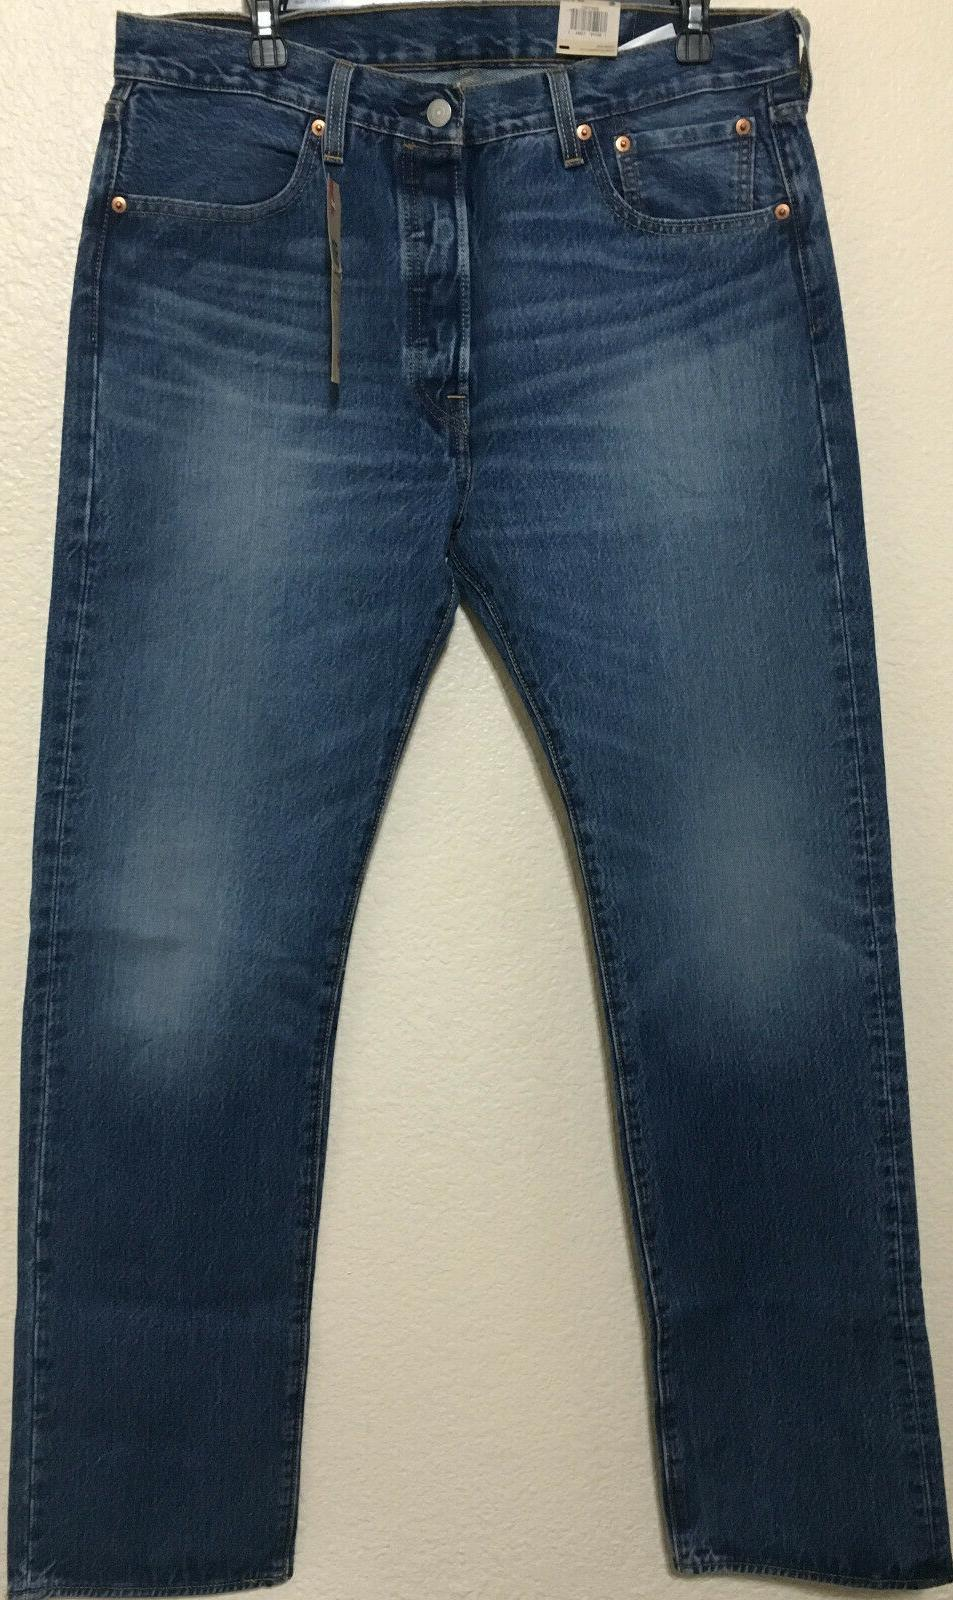 NWT 501 -2487 BUTTON STRAIGHT BLUE PANT $70